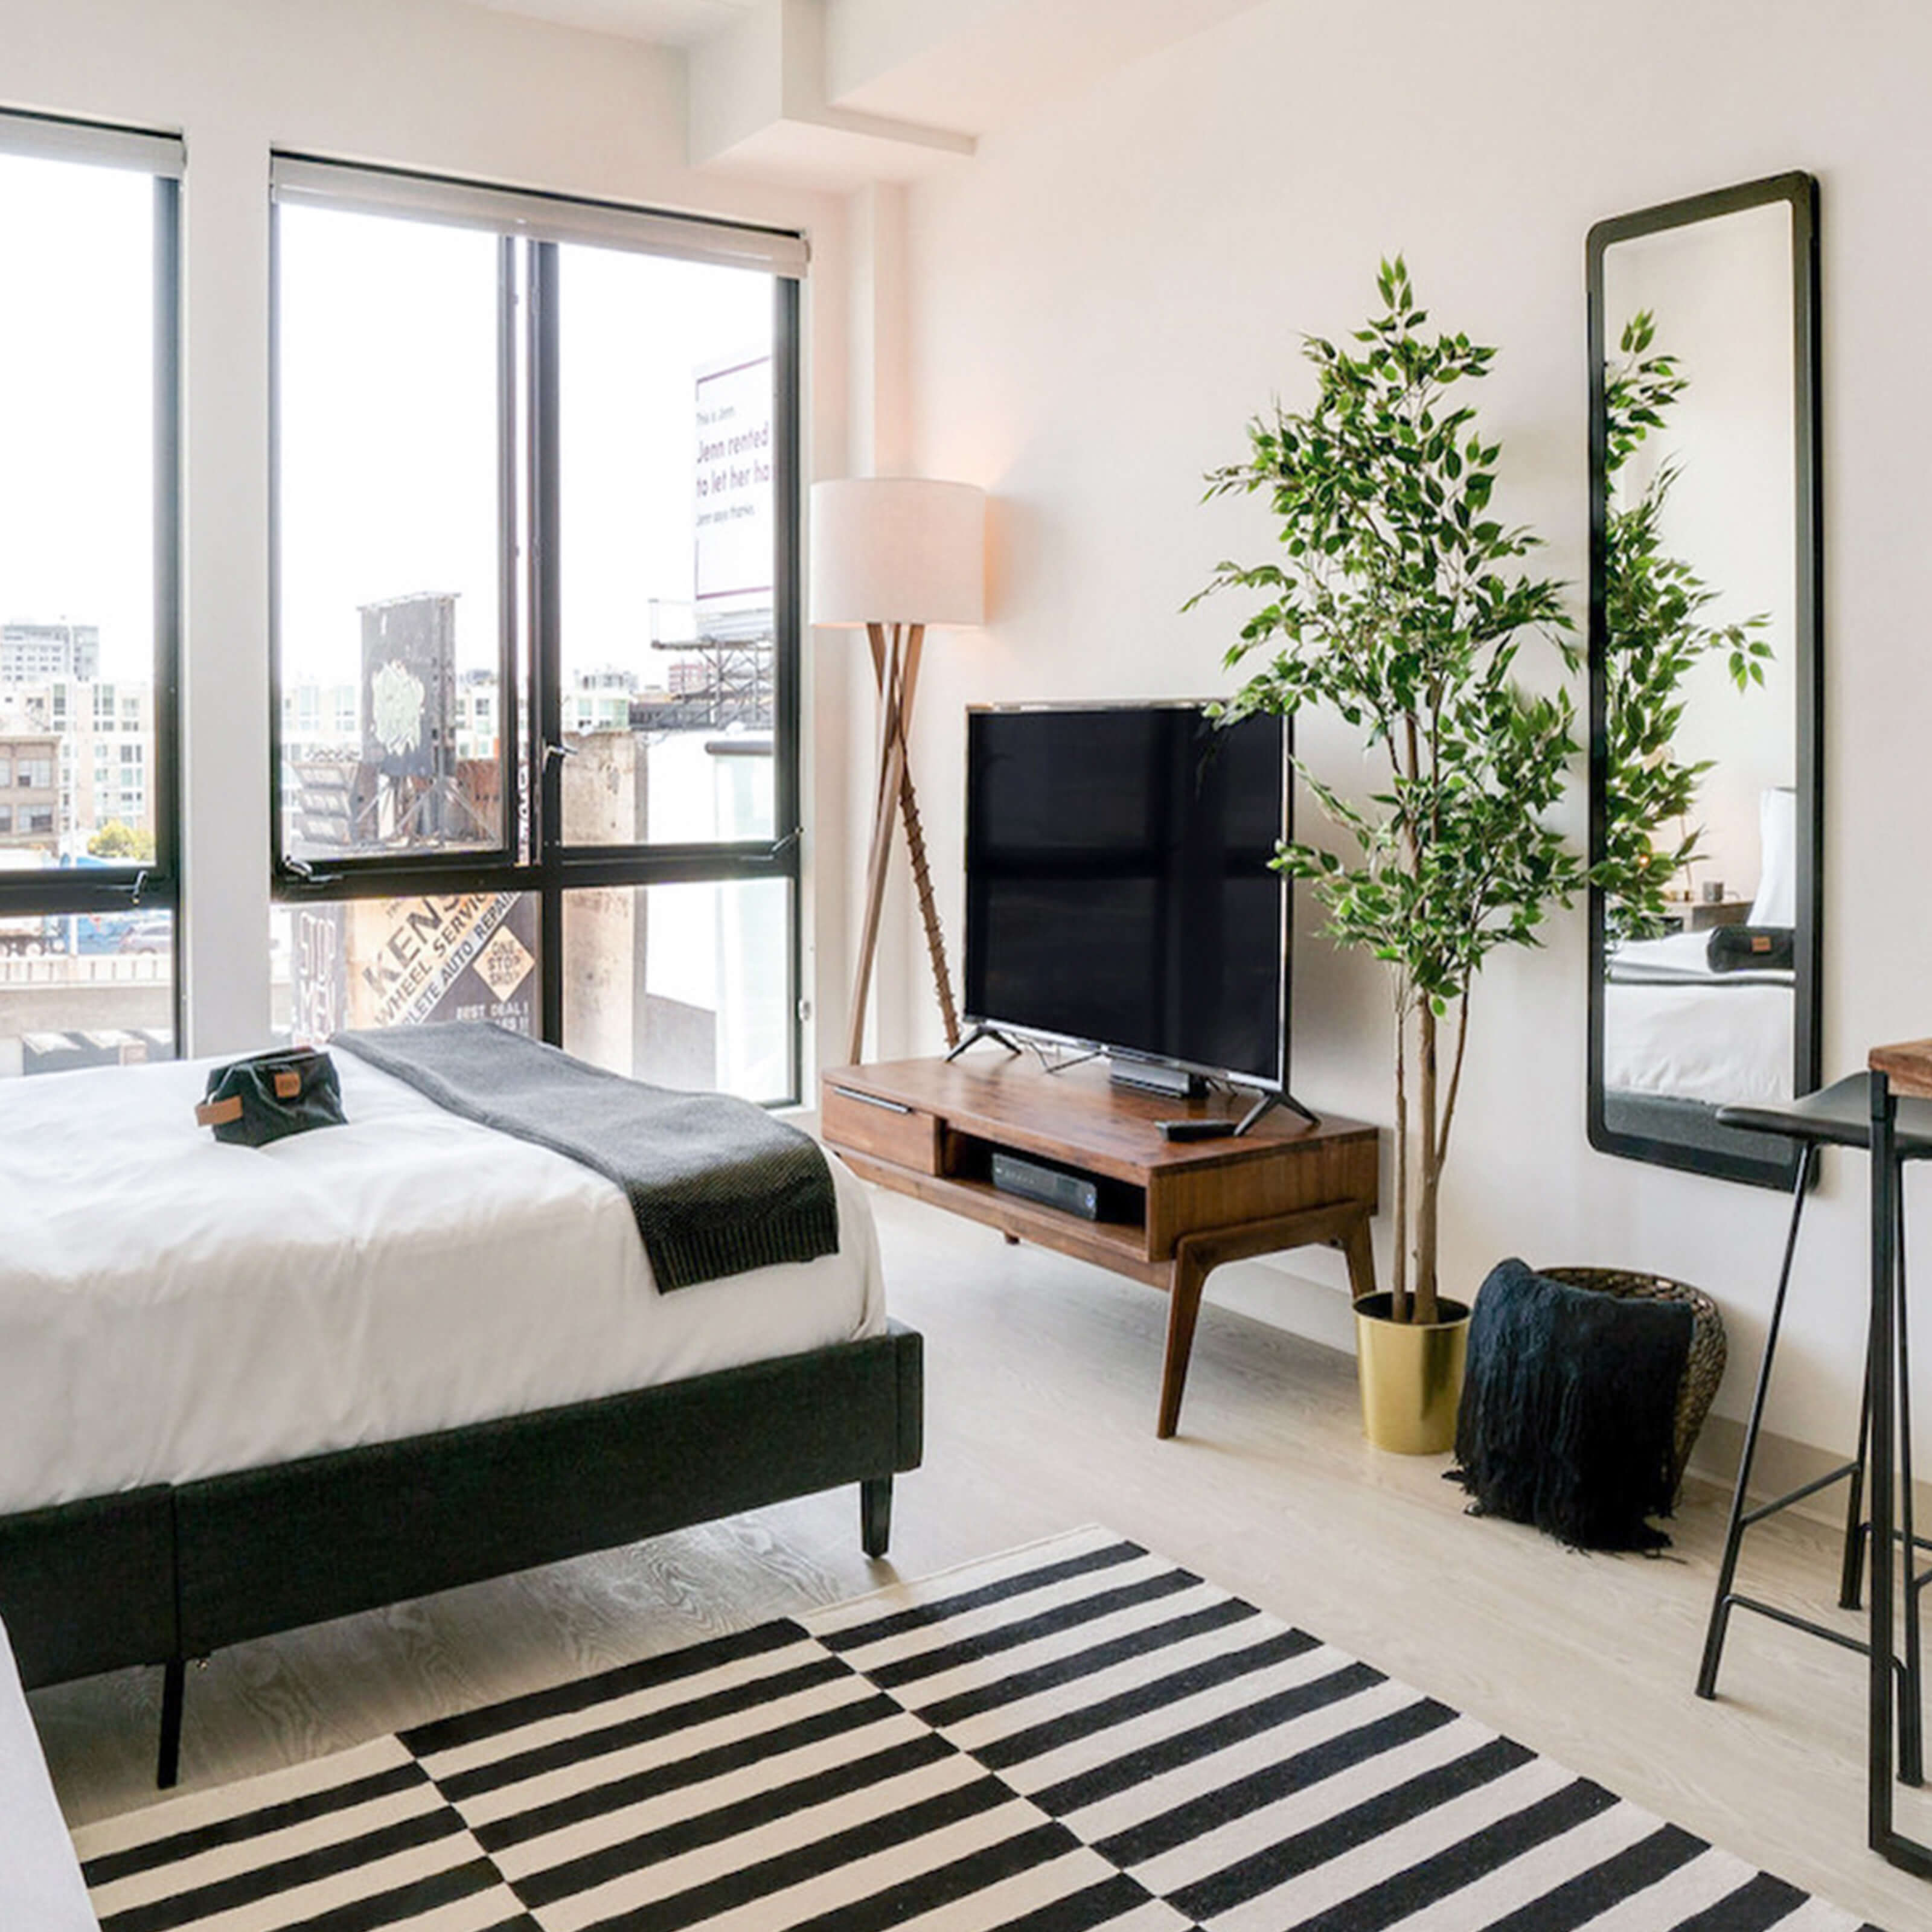 Studio Apartment Ideas: How to Maximize Your Small Space ...